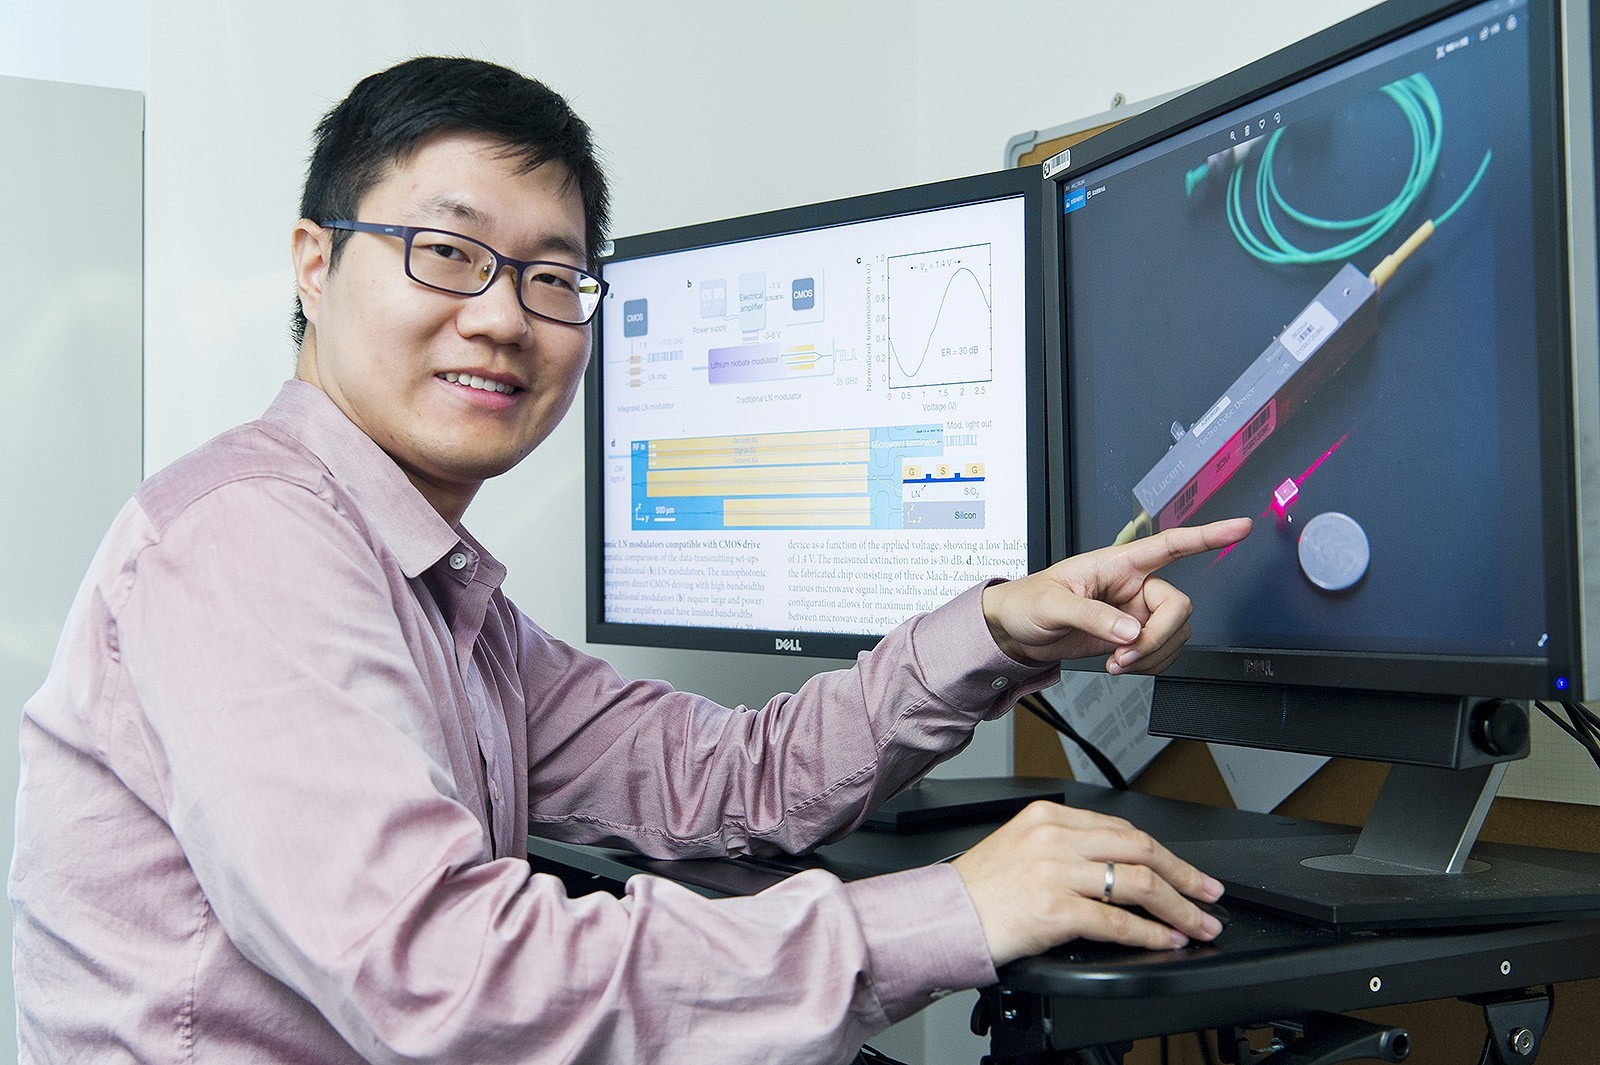 Faster and more energy-efficient modulator